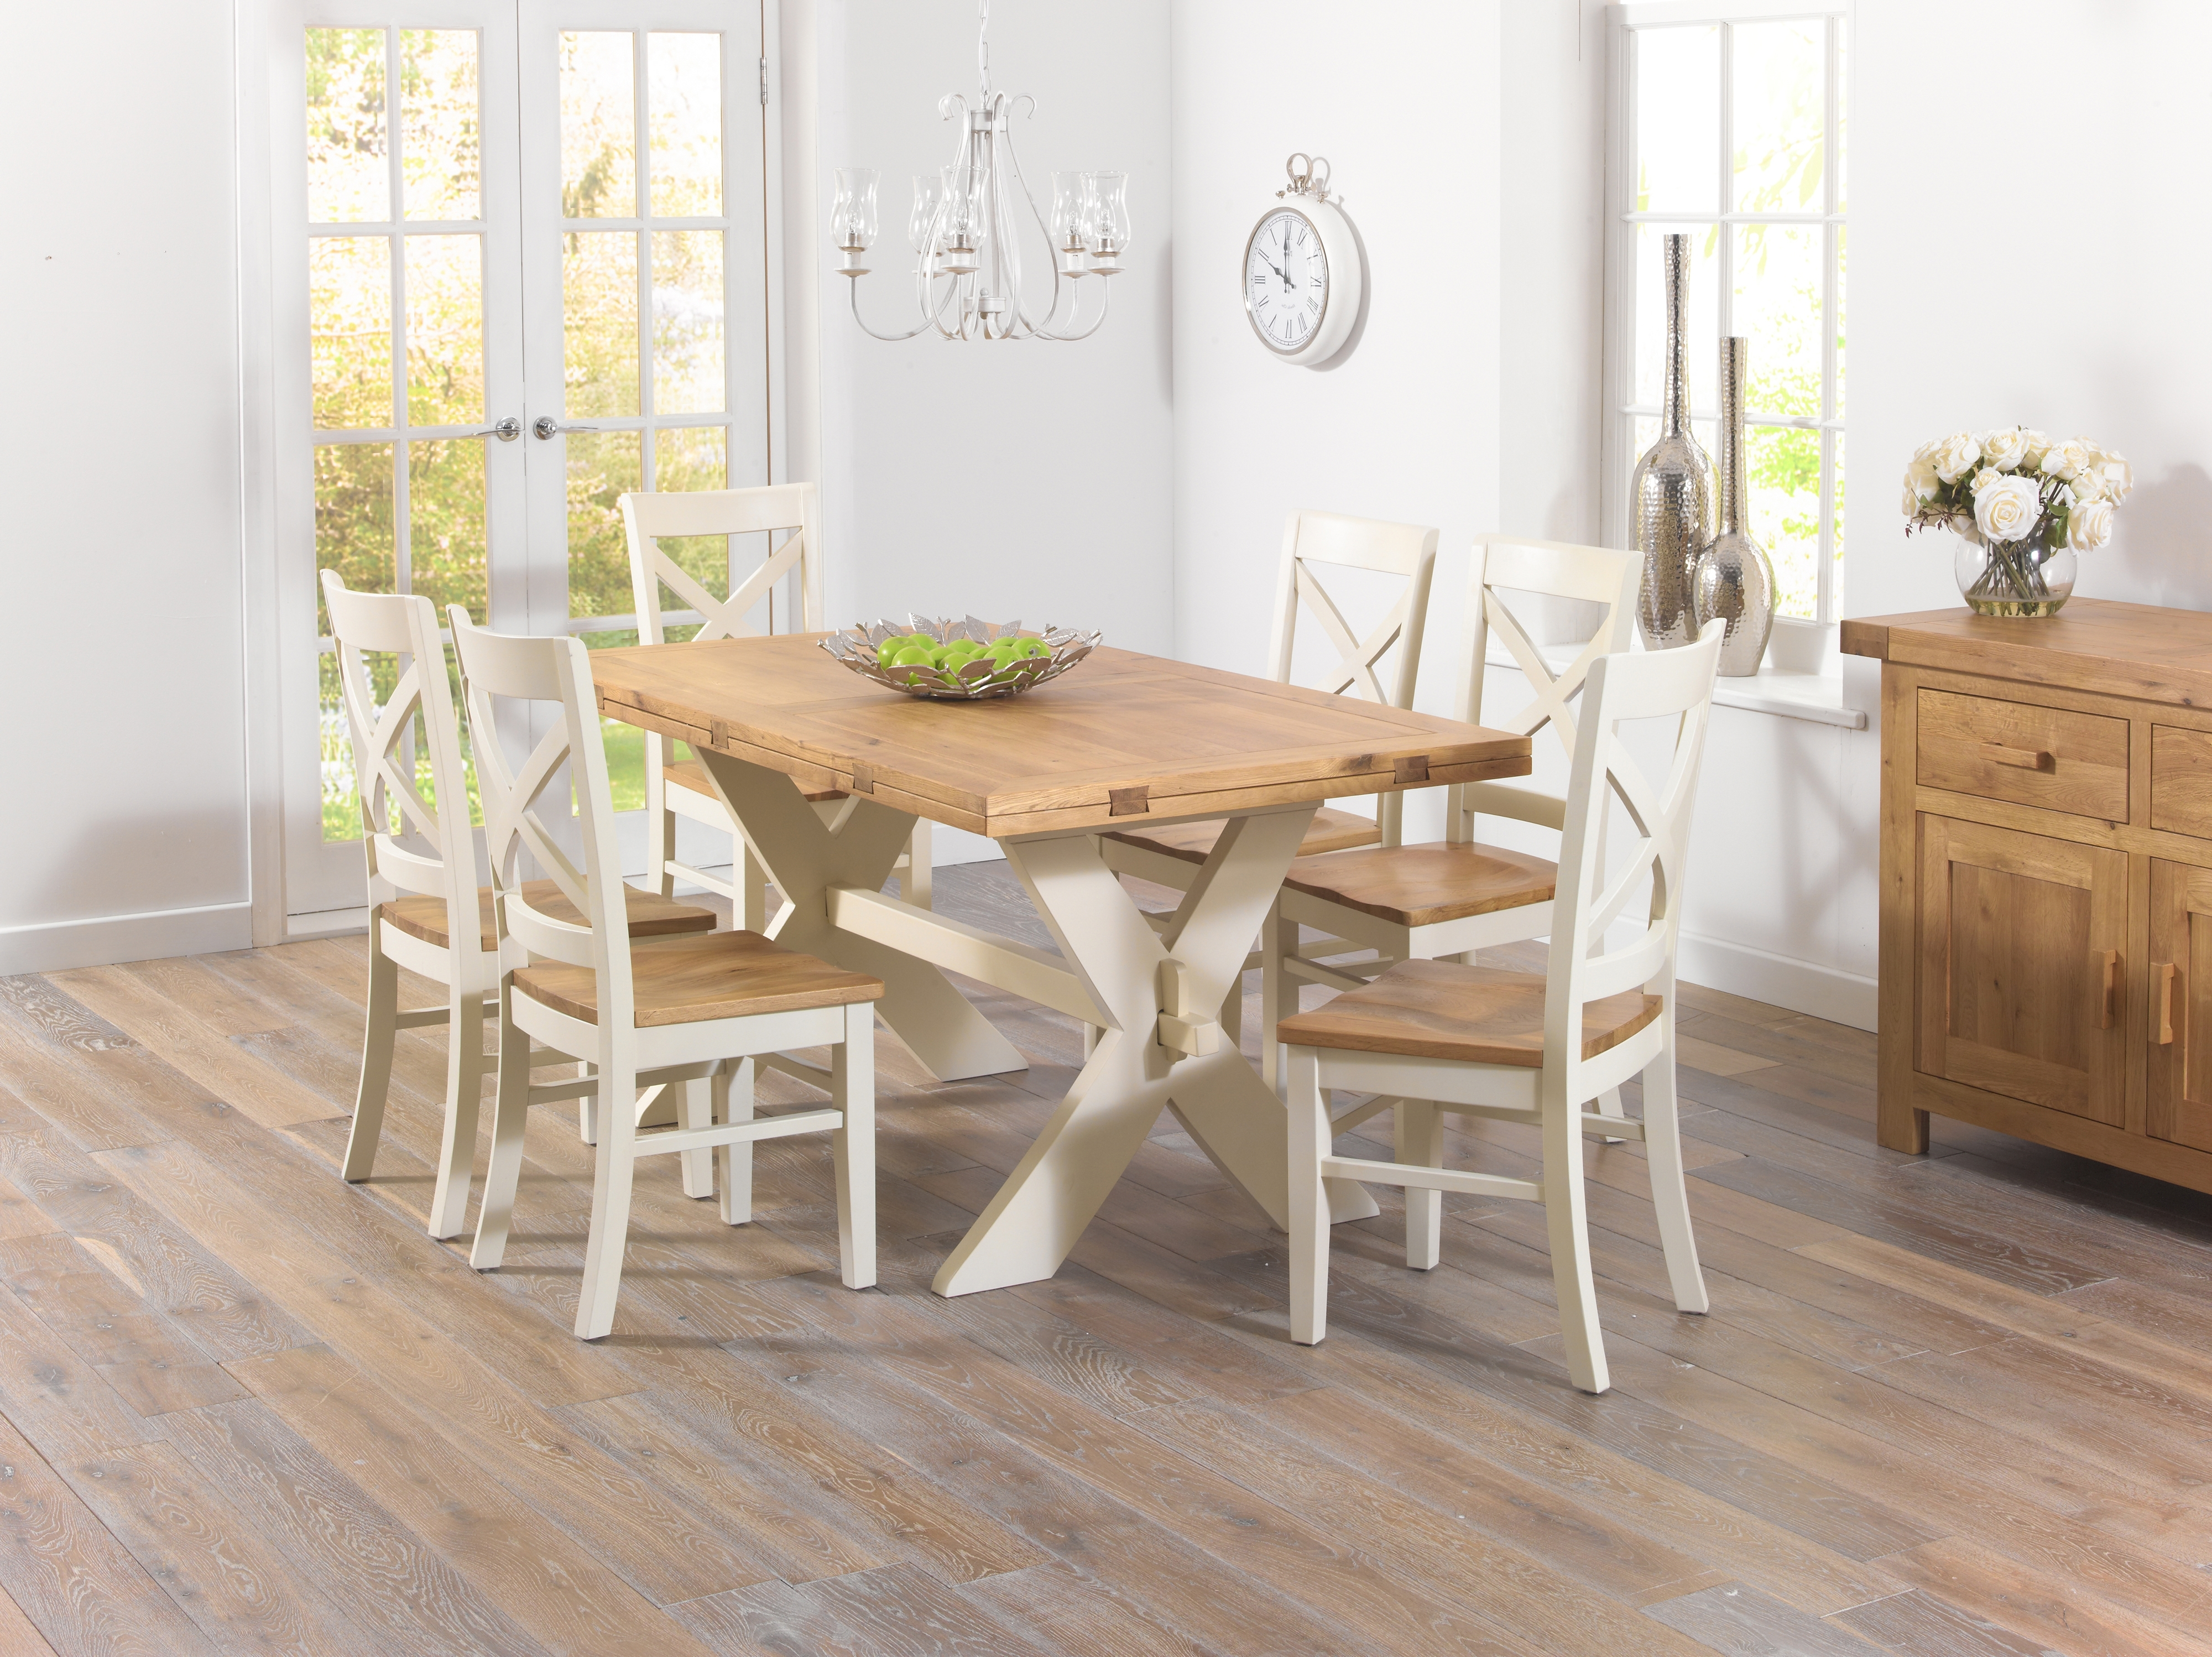 Avignon Oak And Cream All Sides Dining Table + Cavana Chairs – £ (View 3 of 25)